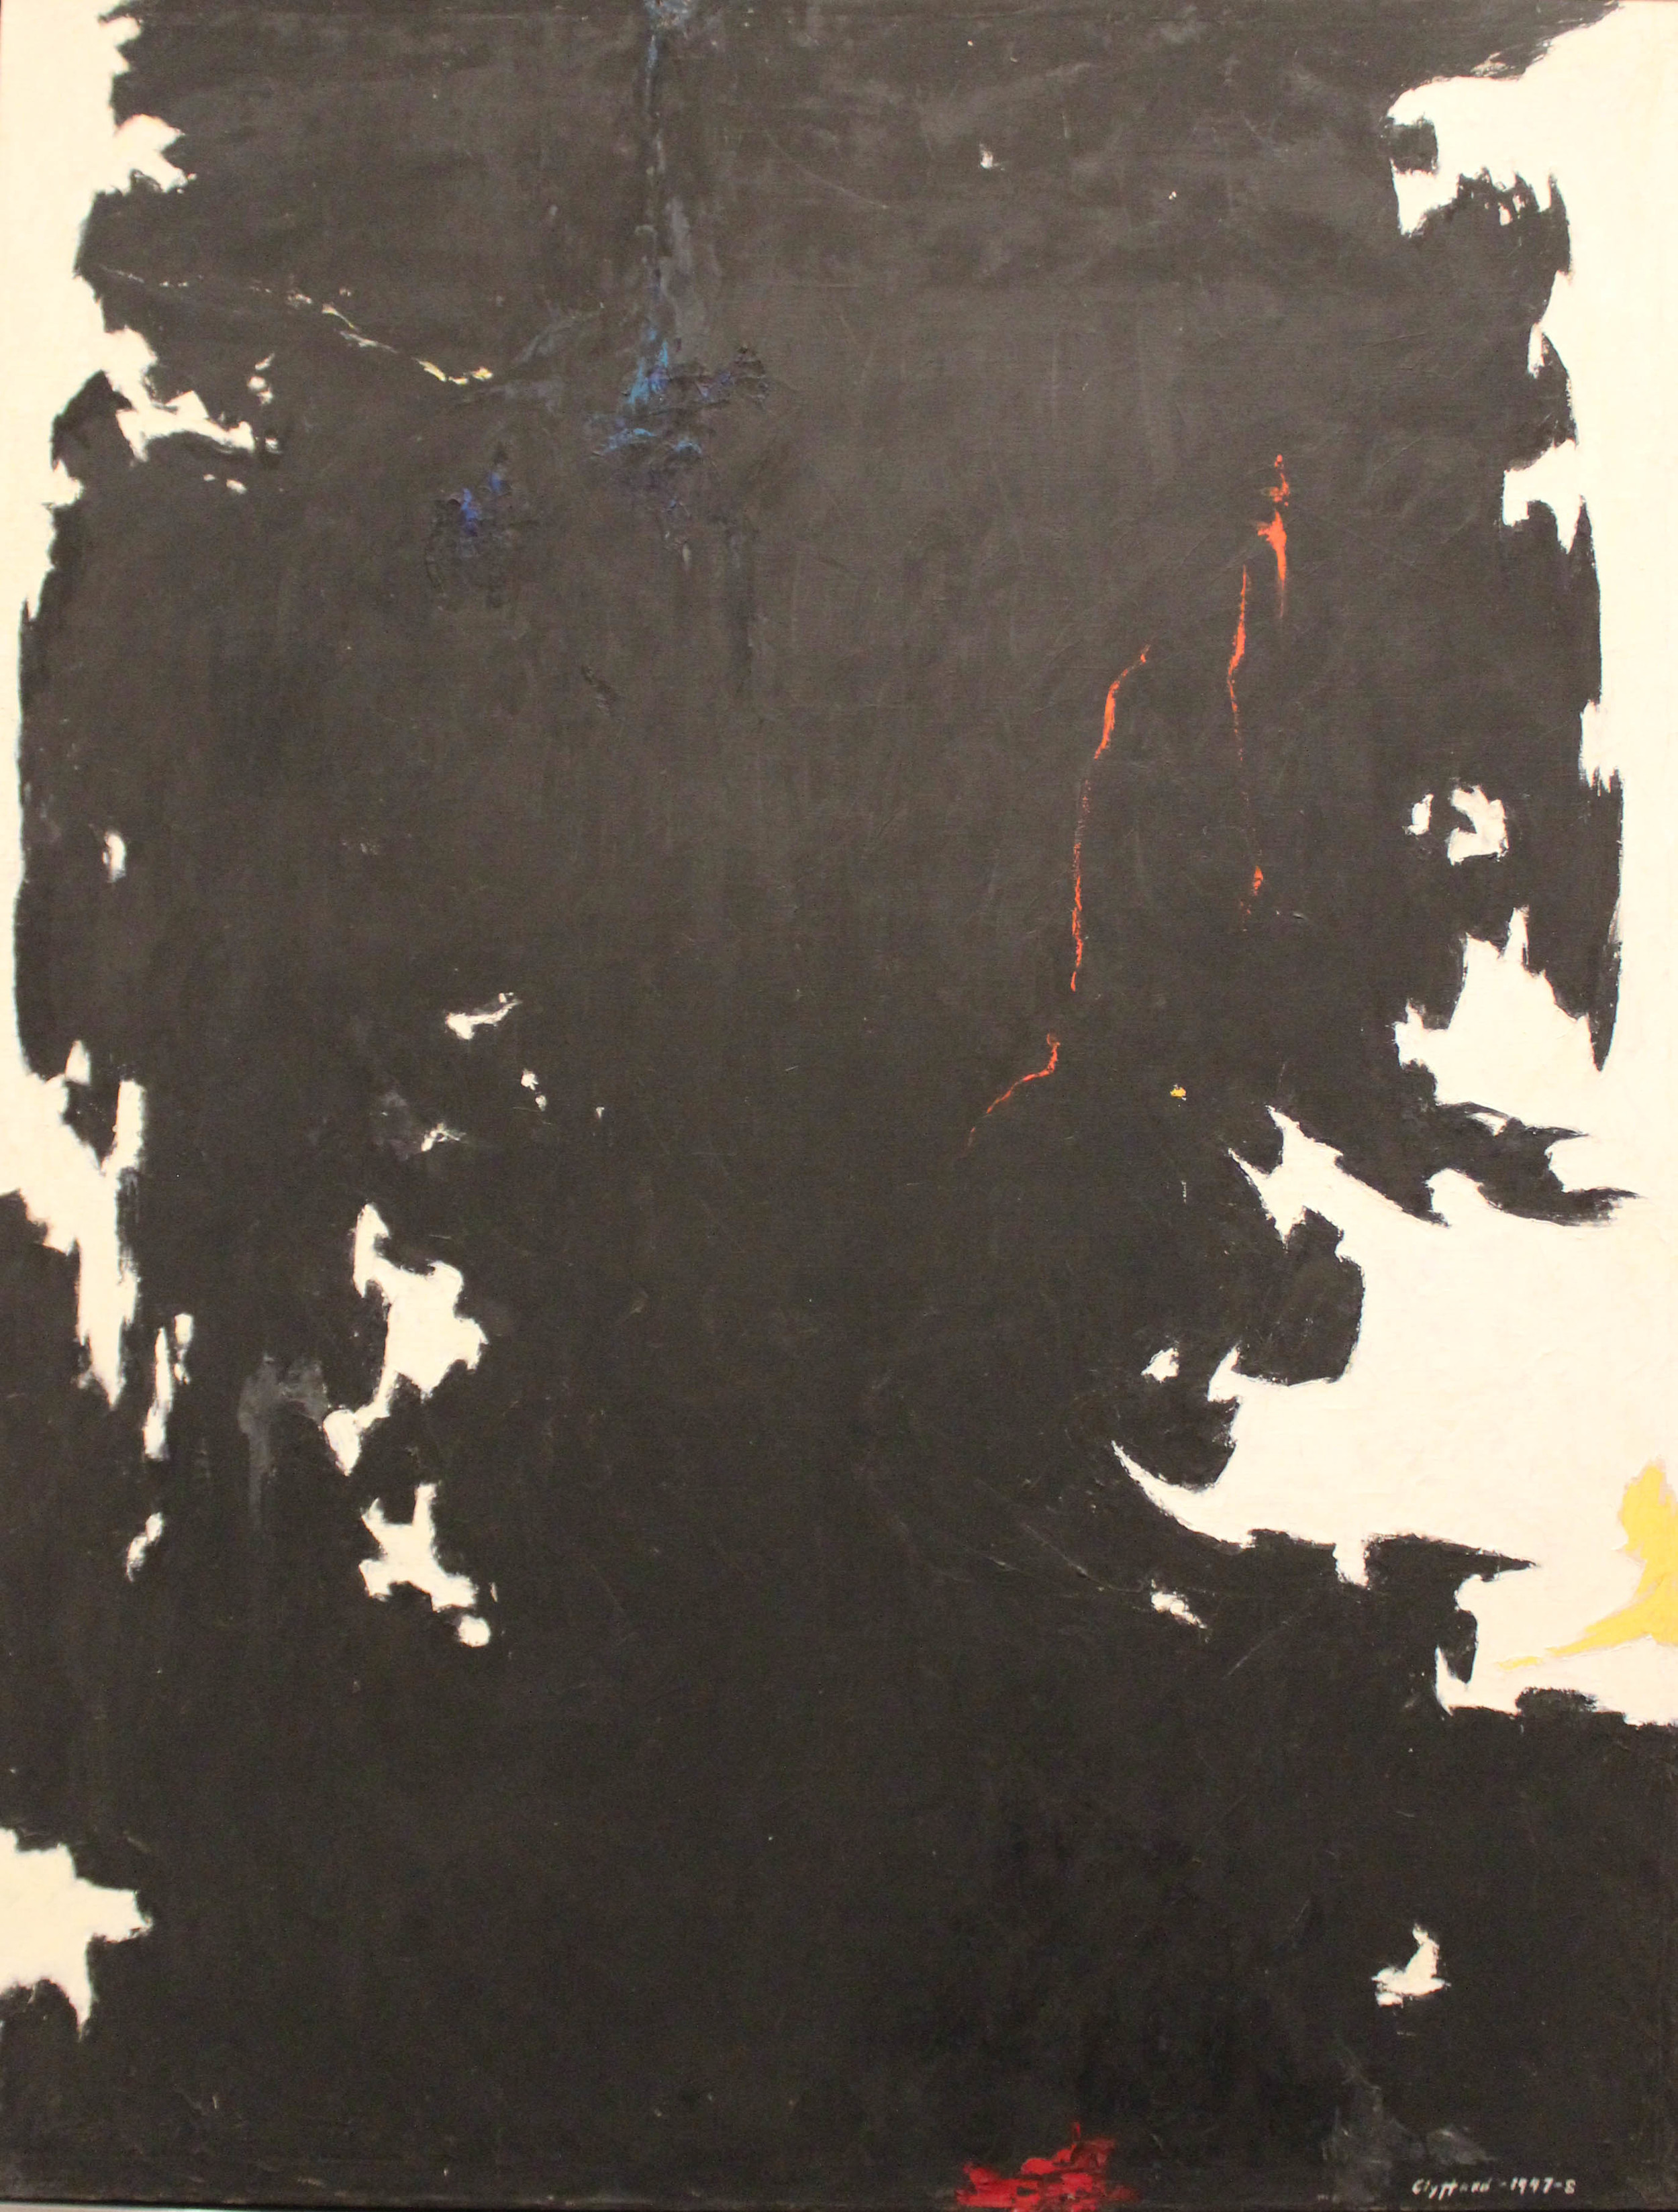 Clyfford Still: 1947-48-W No. 1, 1947-48, on view at the Metropolitan Museum, NY.